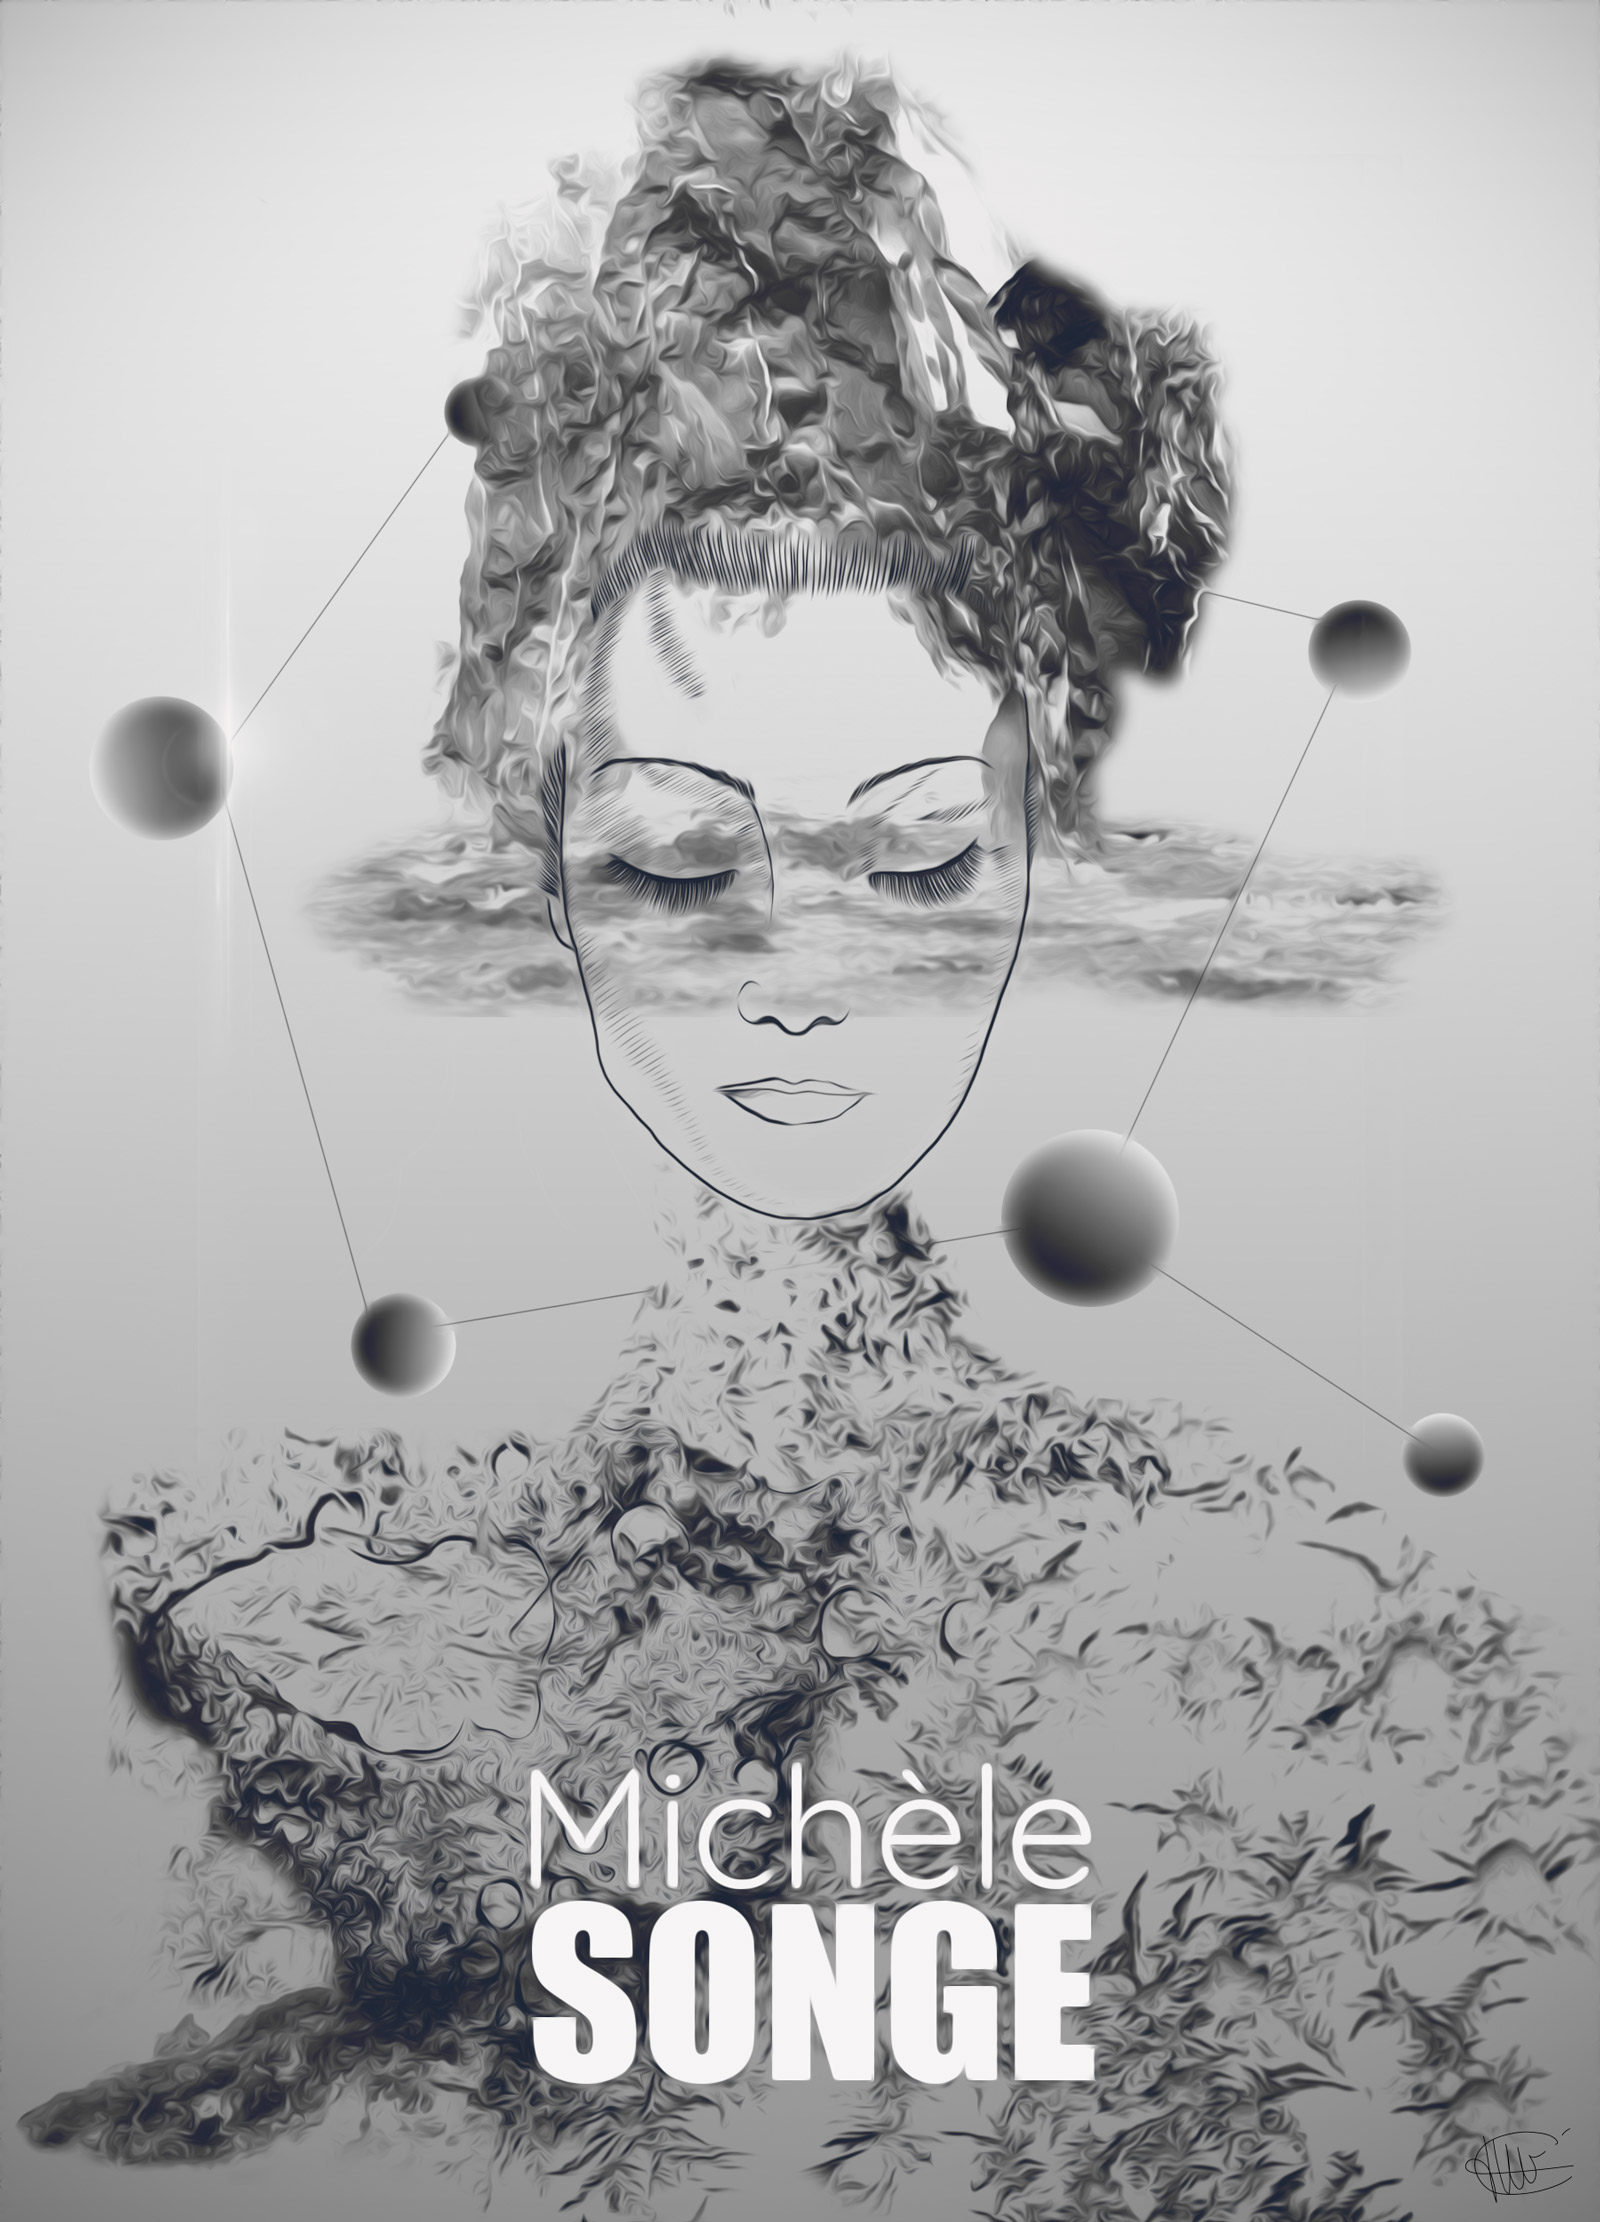 affiche michele songe dessin de michele morgan en photo montage